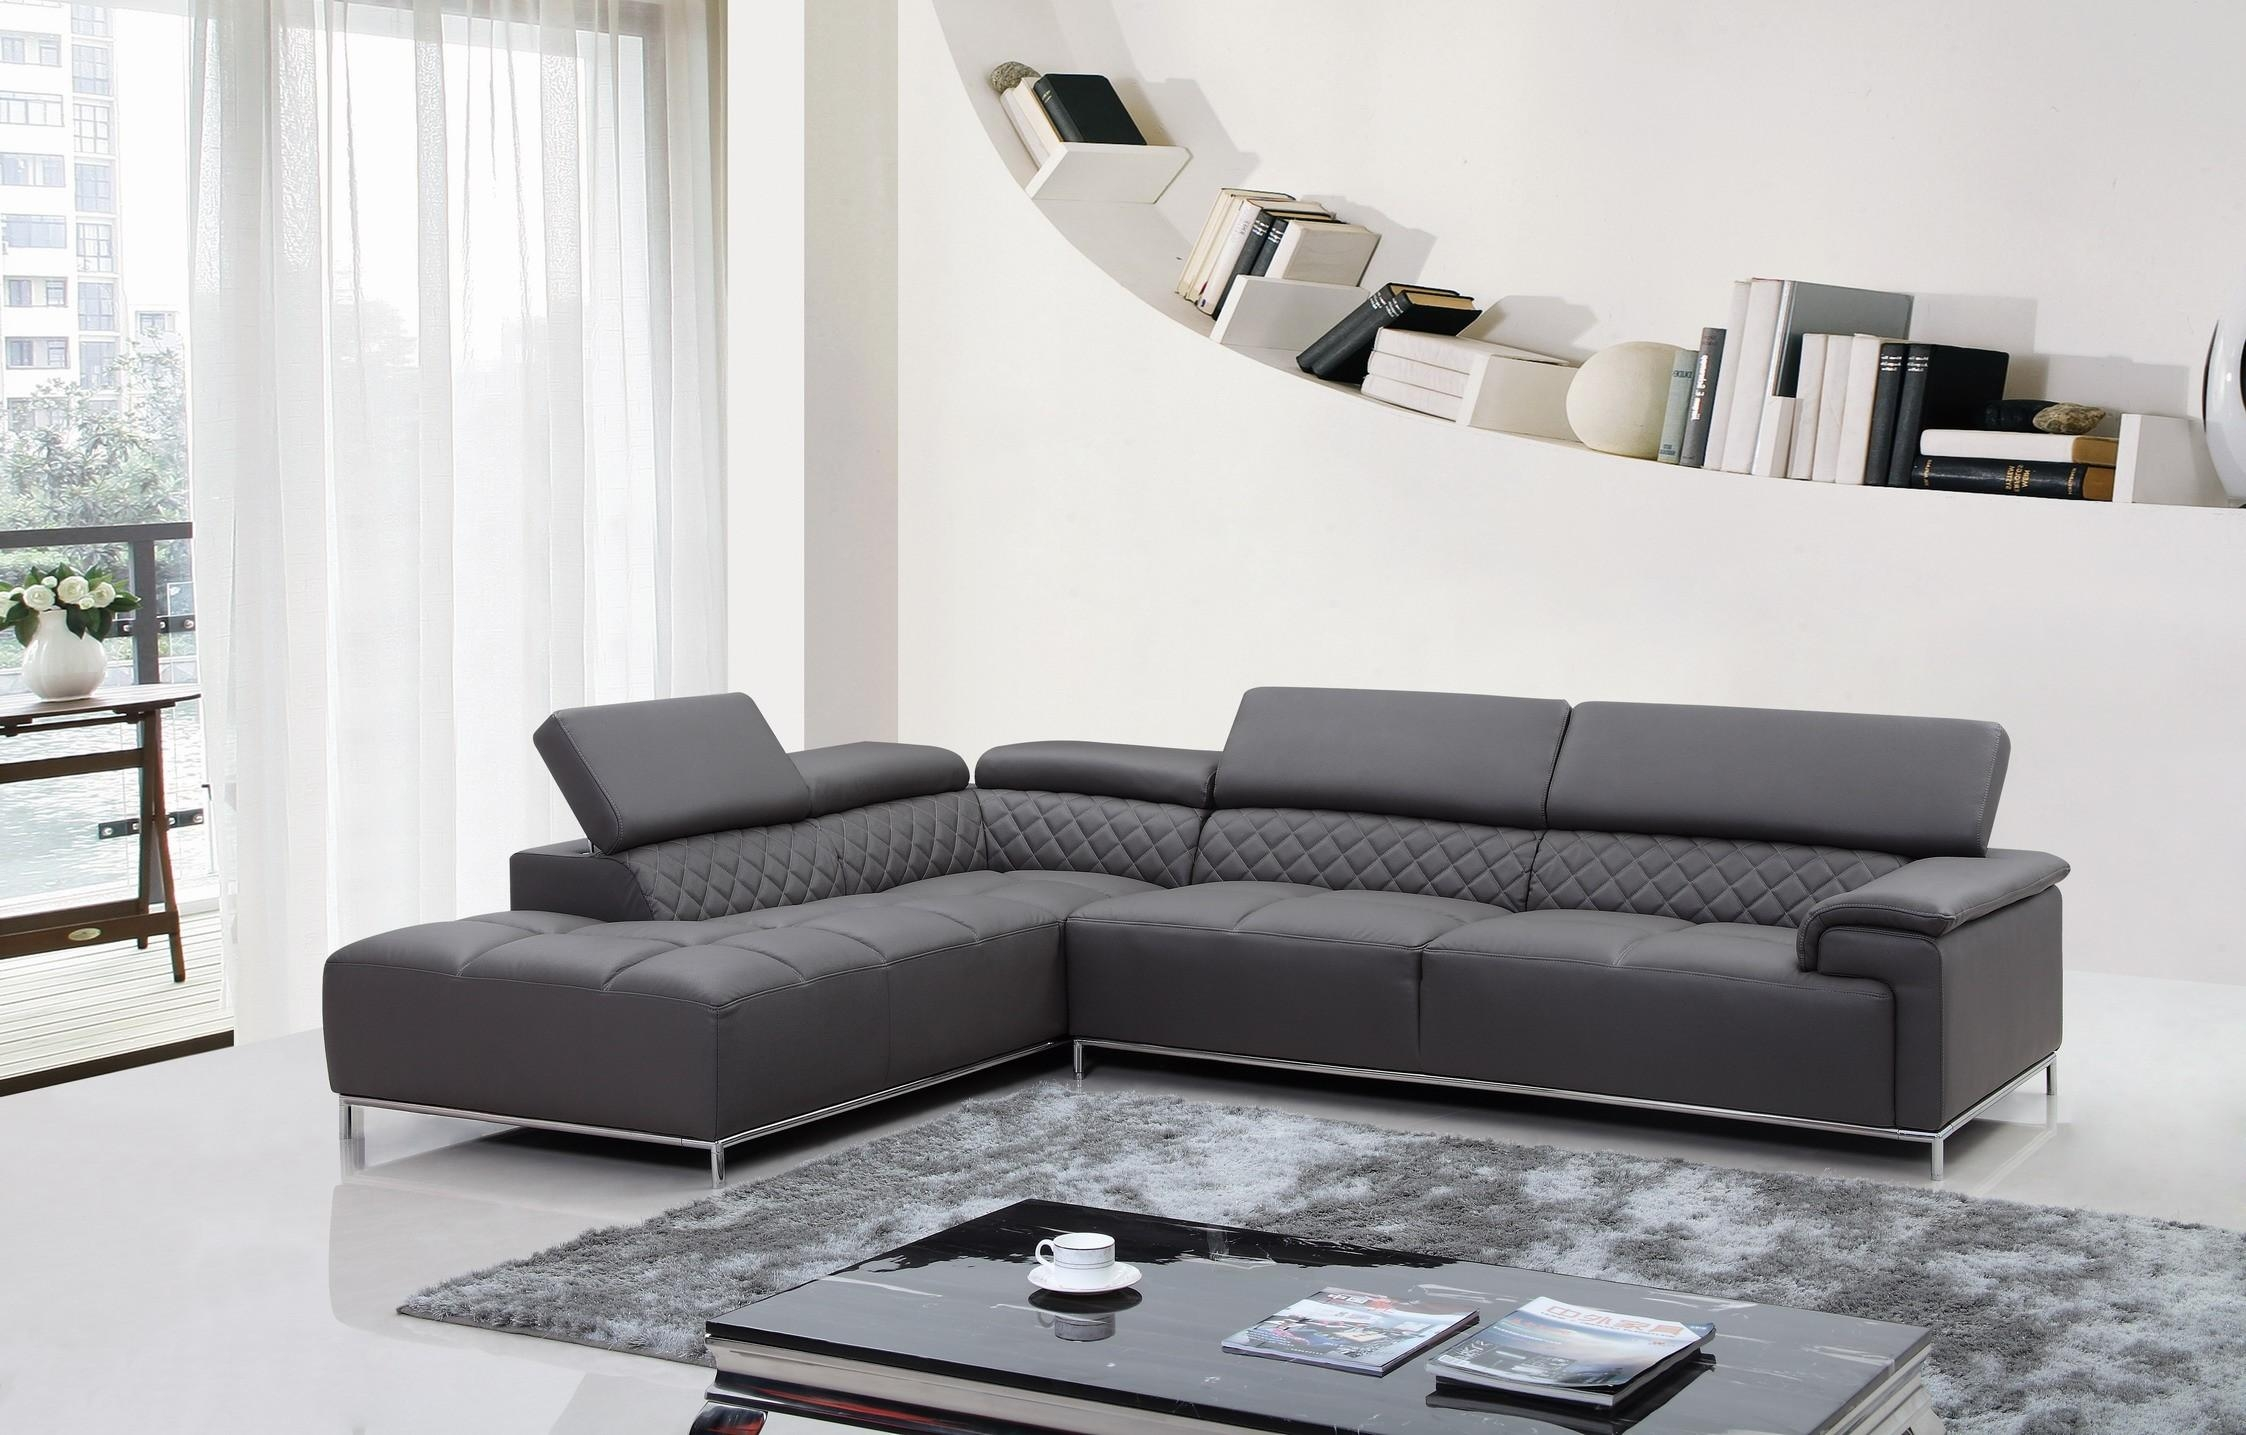 21 Inspirations Modern Sofas Sectionals Sofa Ideas